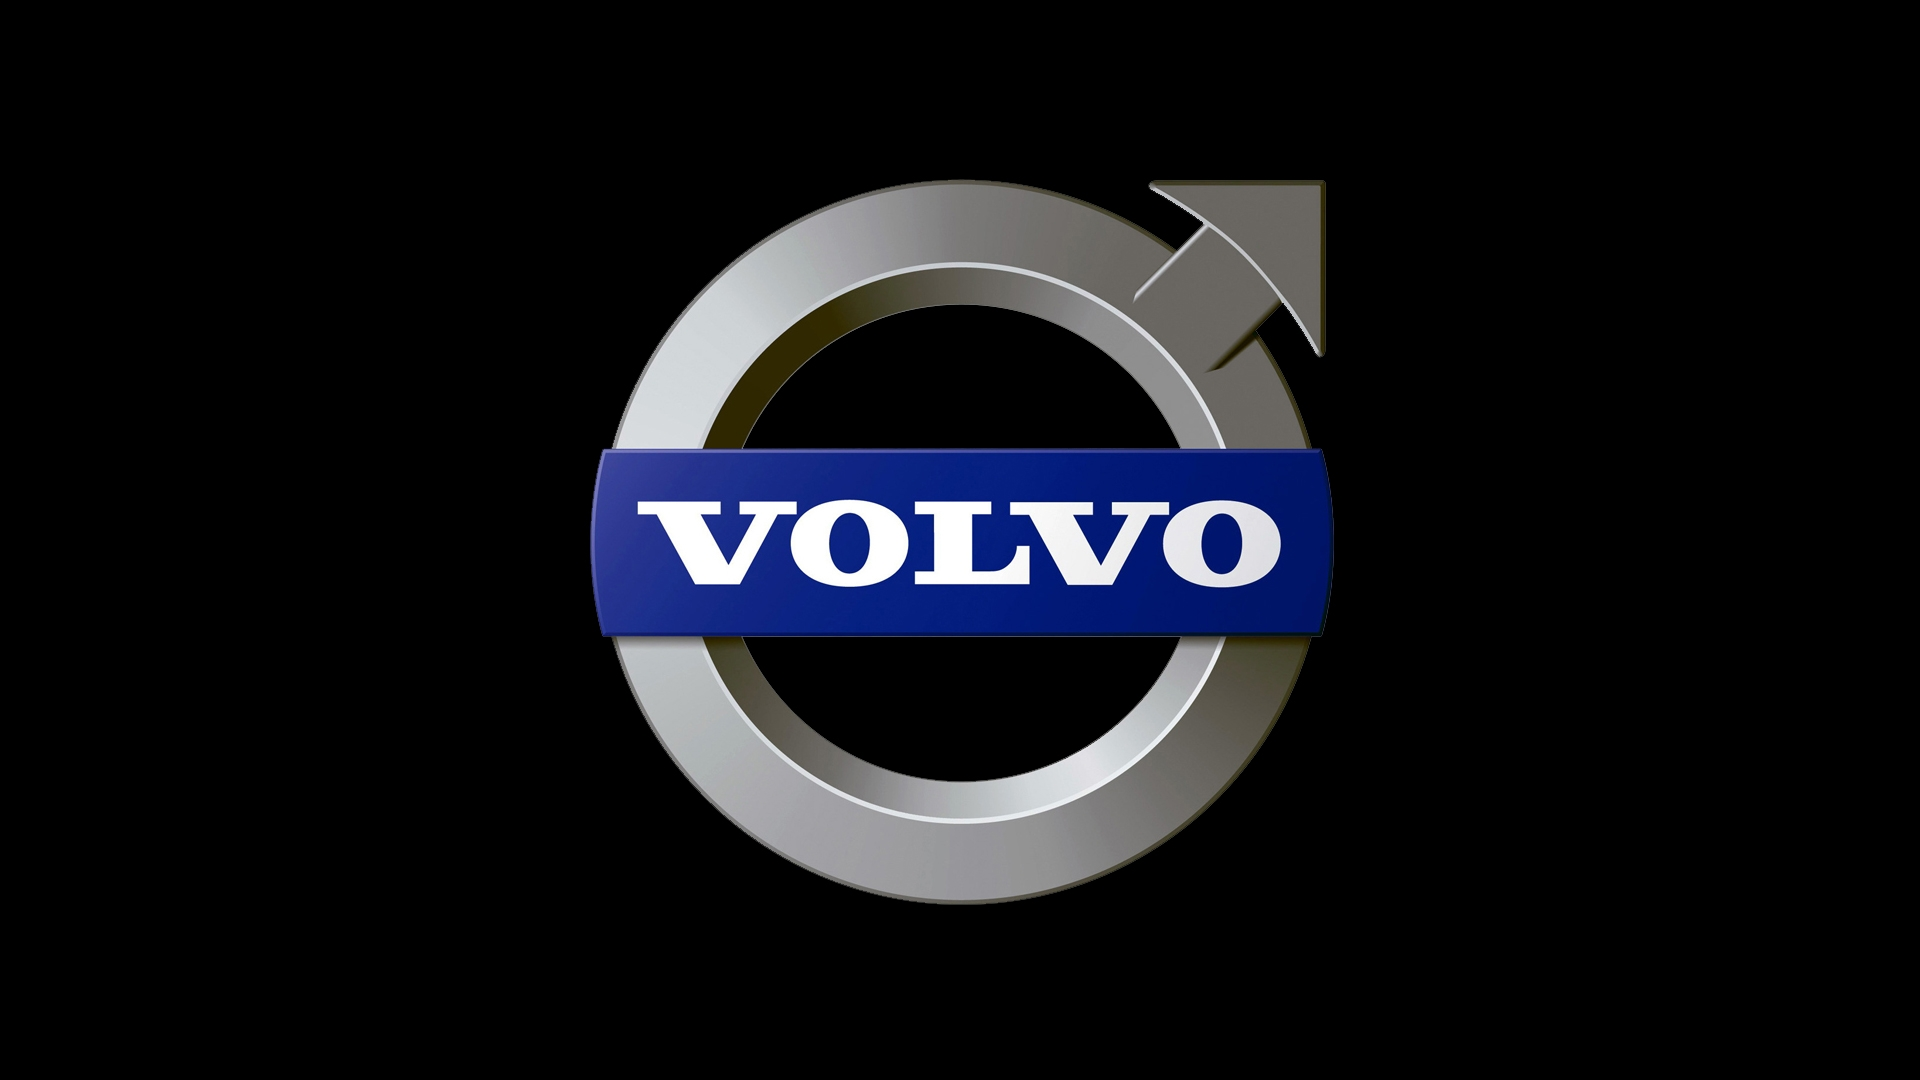 3d Bugatti Car Wallpaper Volvo Logo Volvo Car Symbol Meaning And History Car